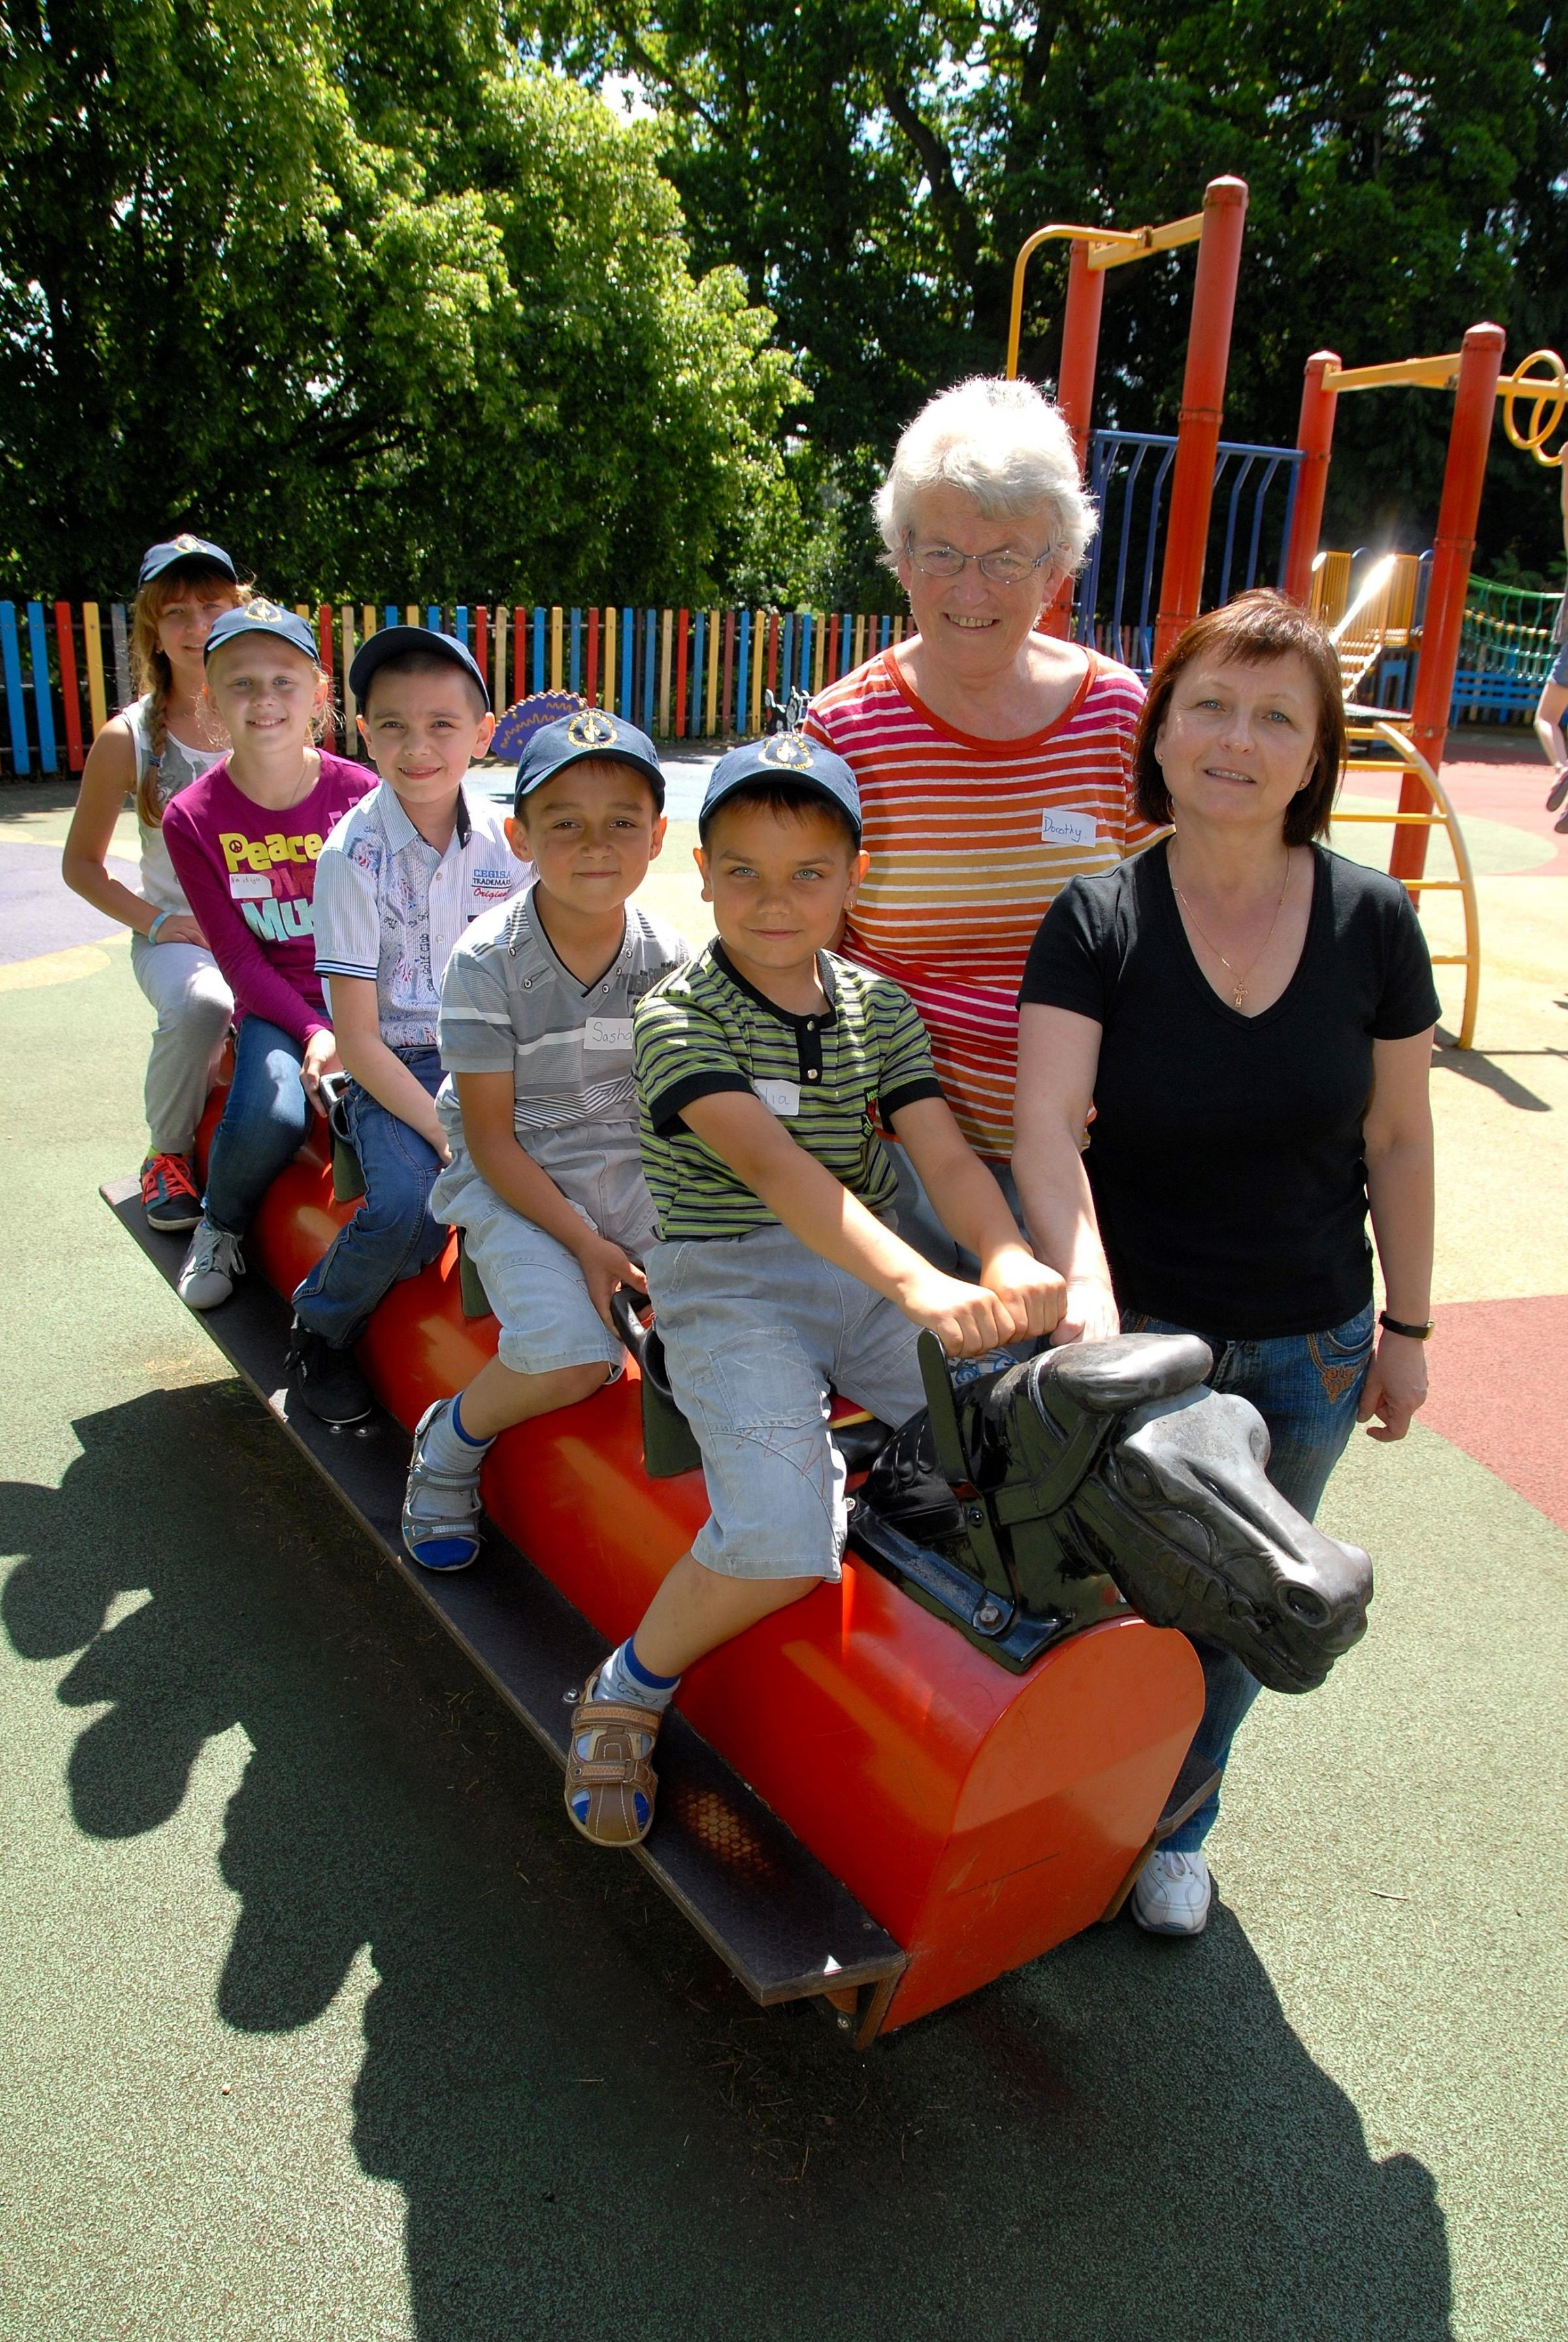 From Belarus to Malvern - children arrive for healthy holiday